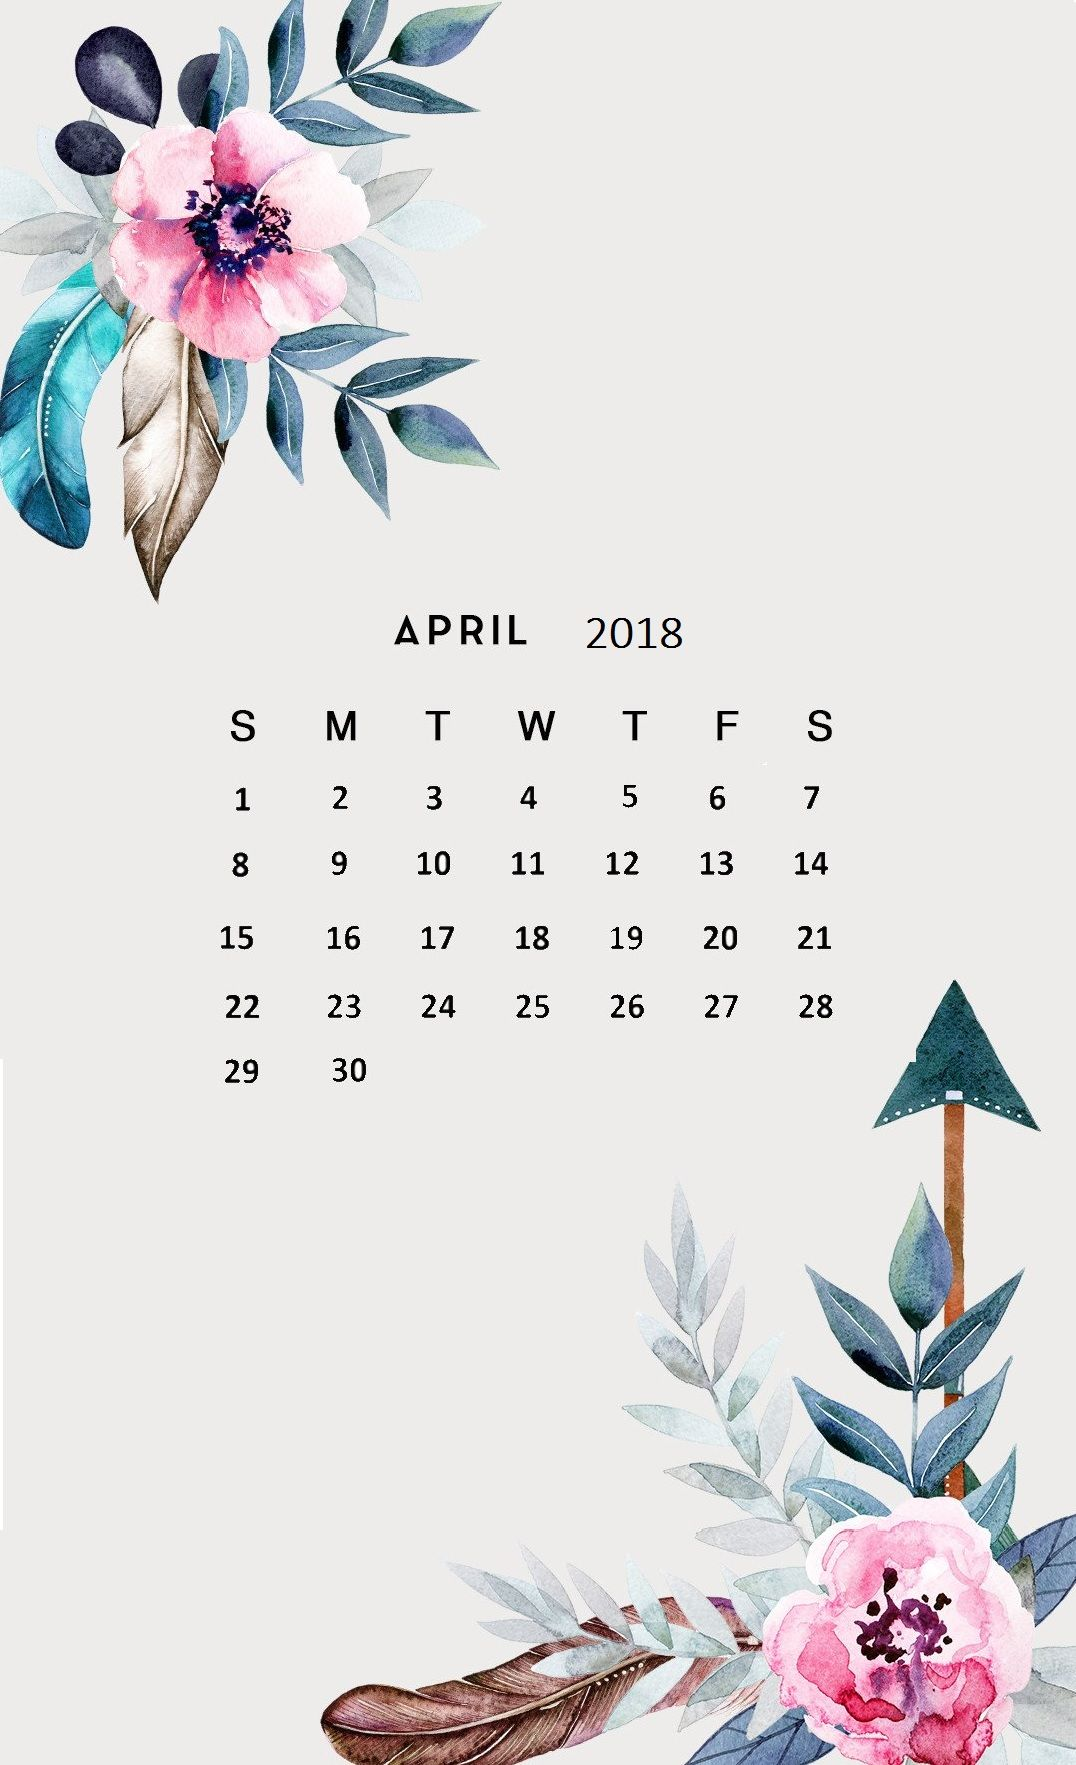 Floral April 2018 iPhone Calendar Wallpaper In the background 1076x1765